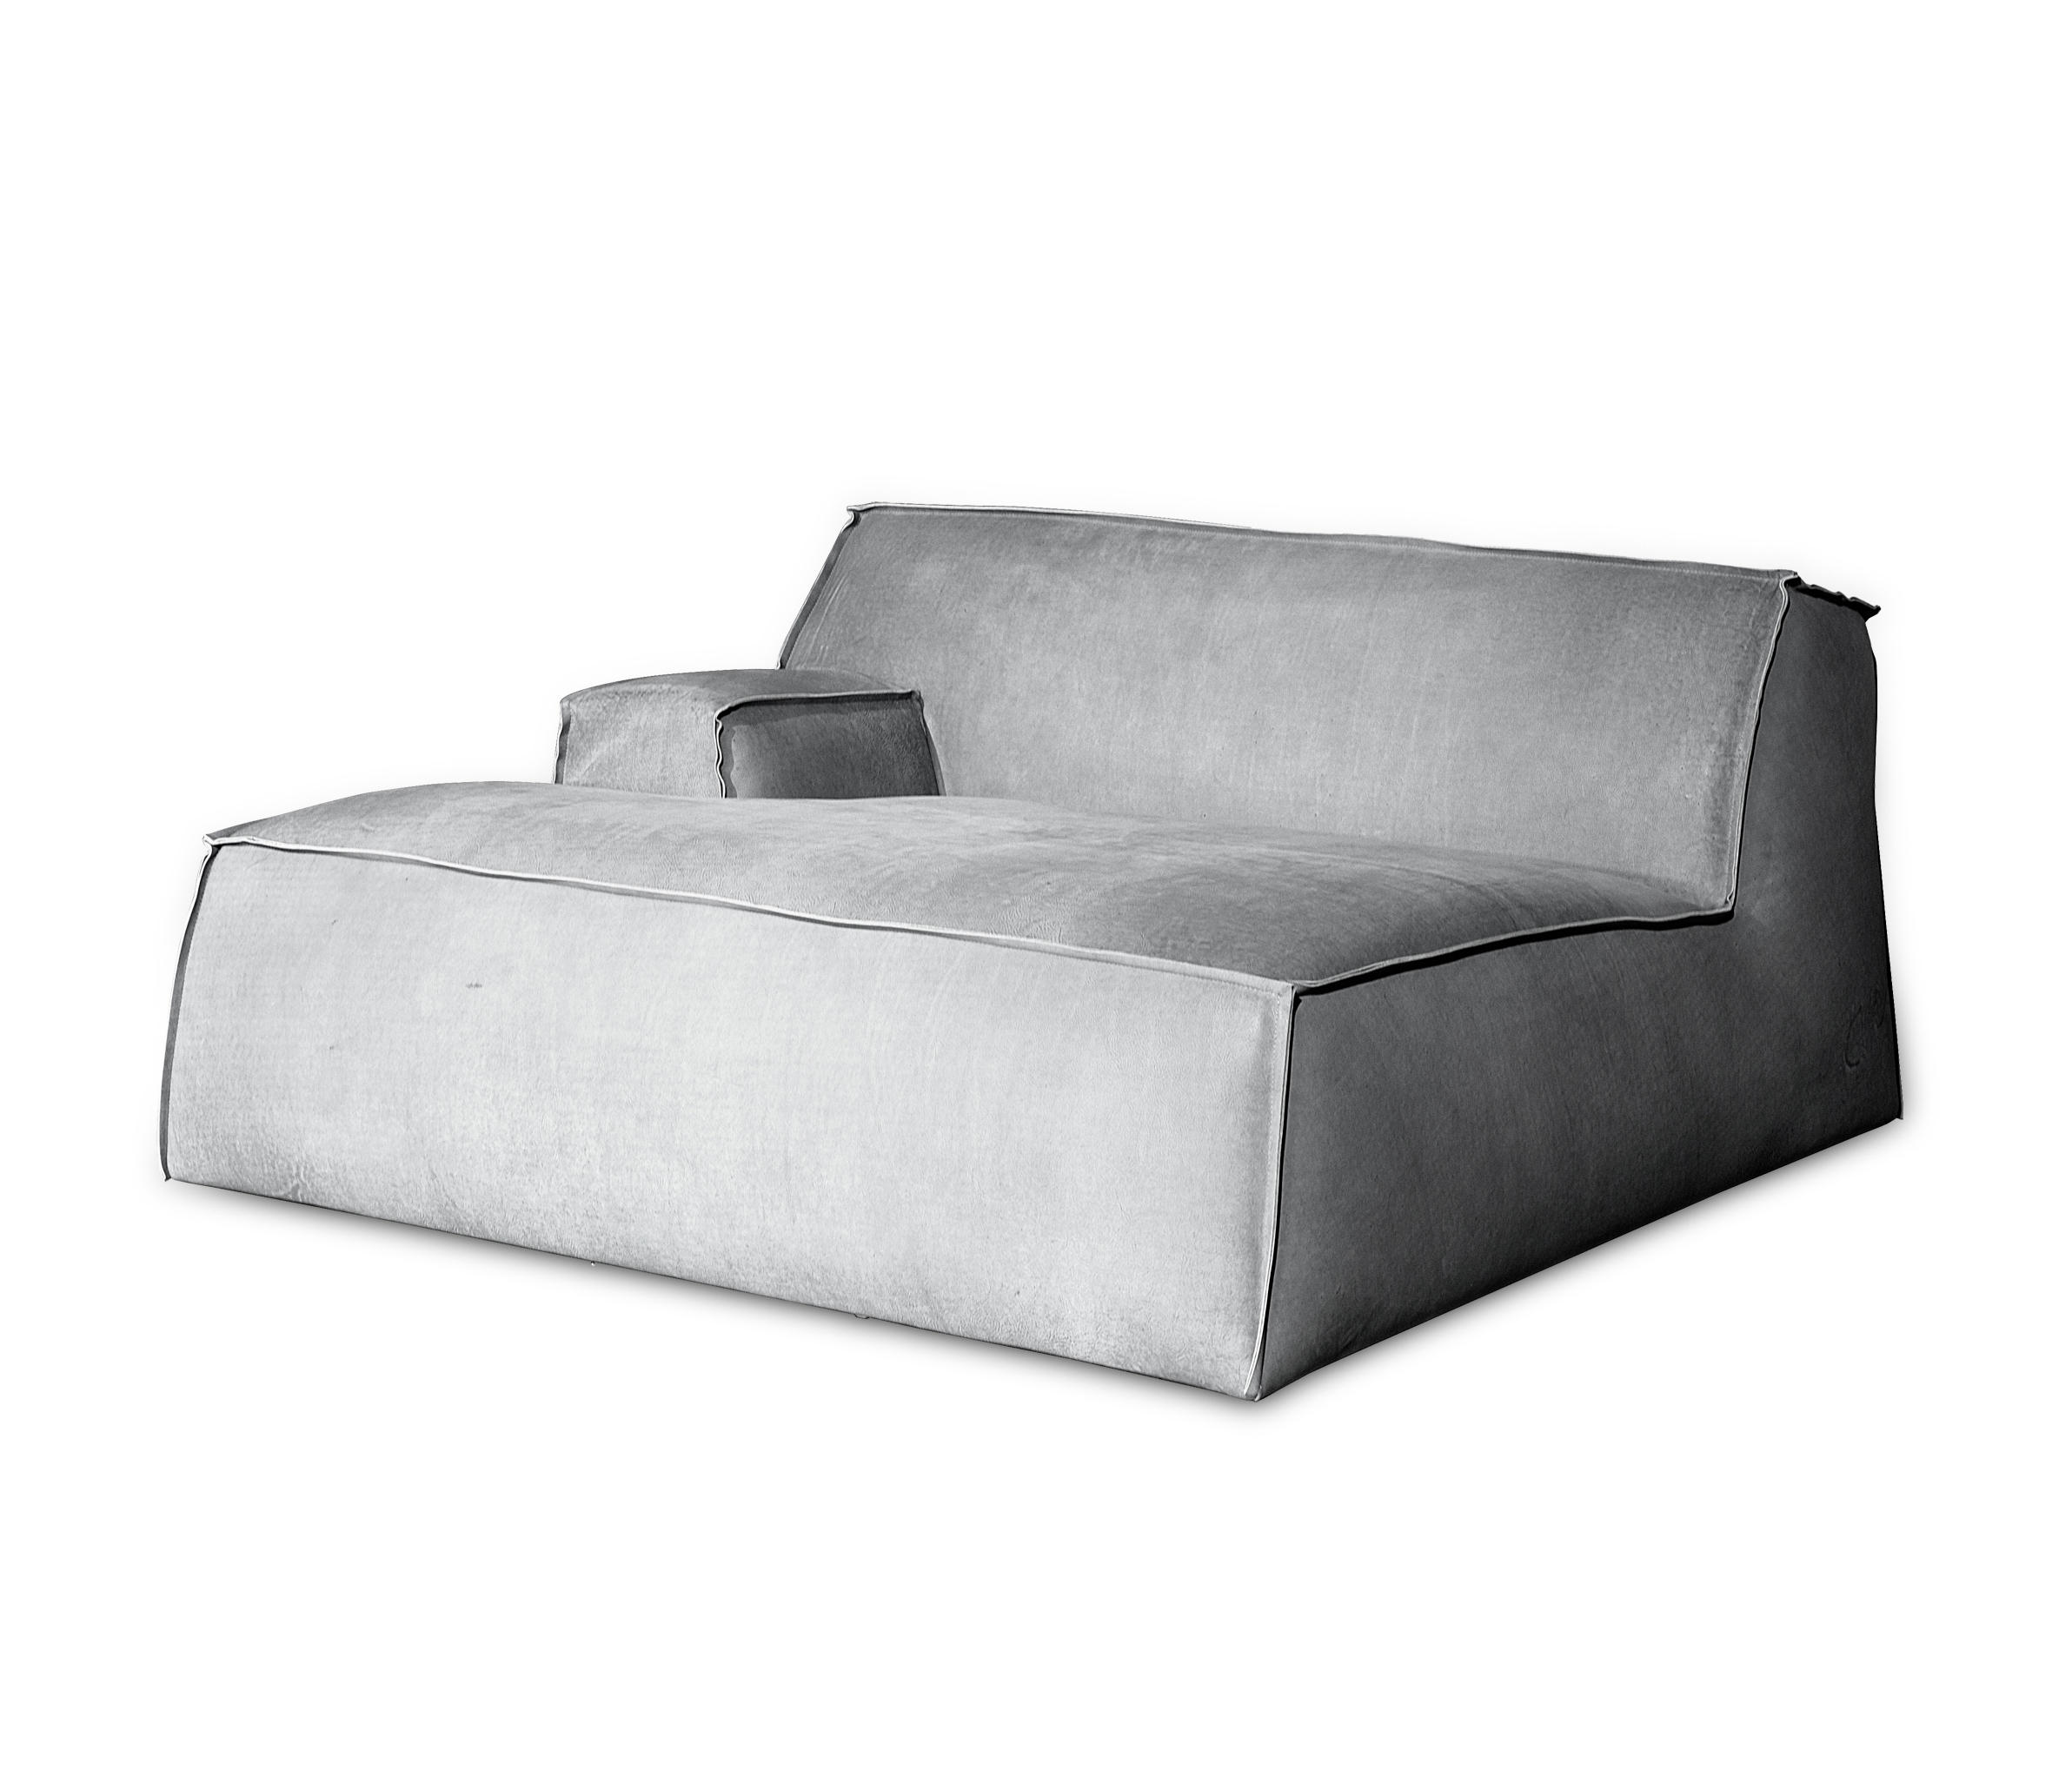 damasco sofa module modular seating elements from baxter architonic. Black Bedroom Furniture Sets. Home Design Ideas